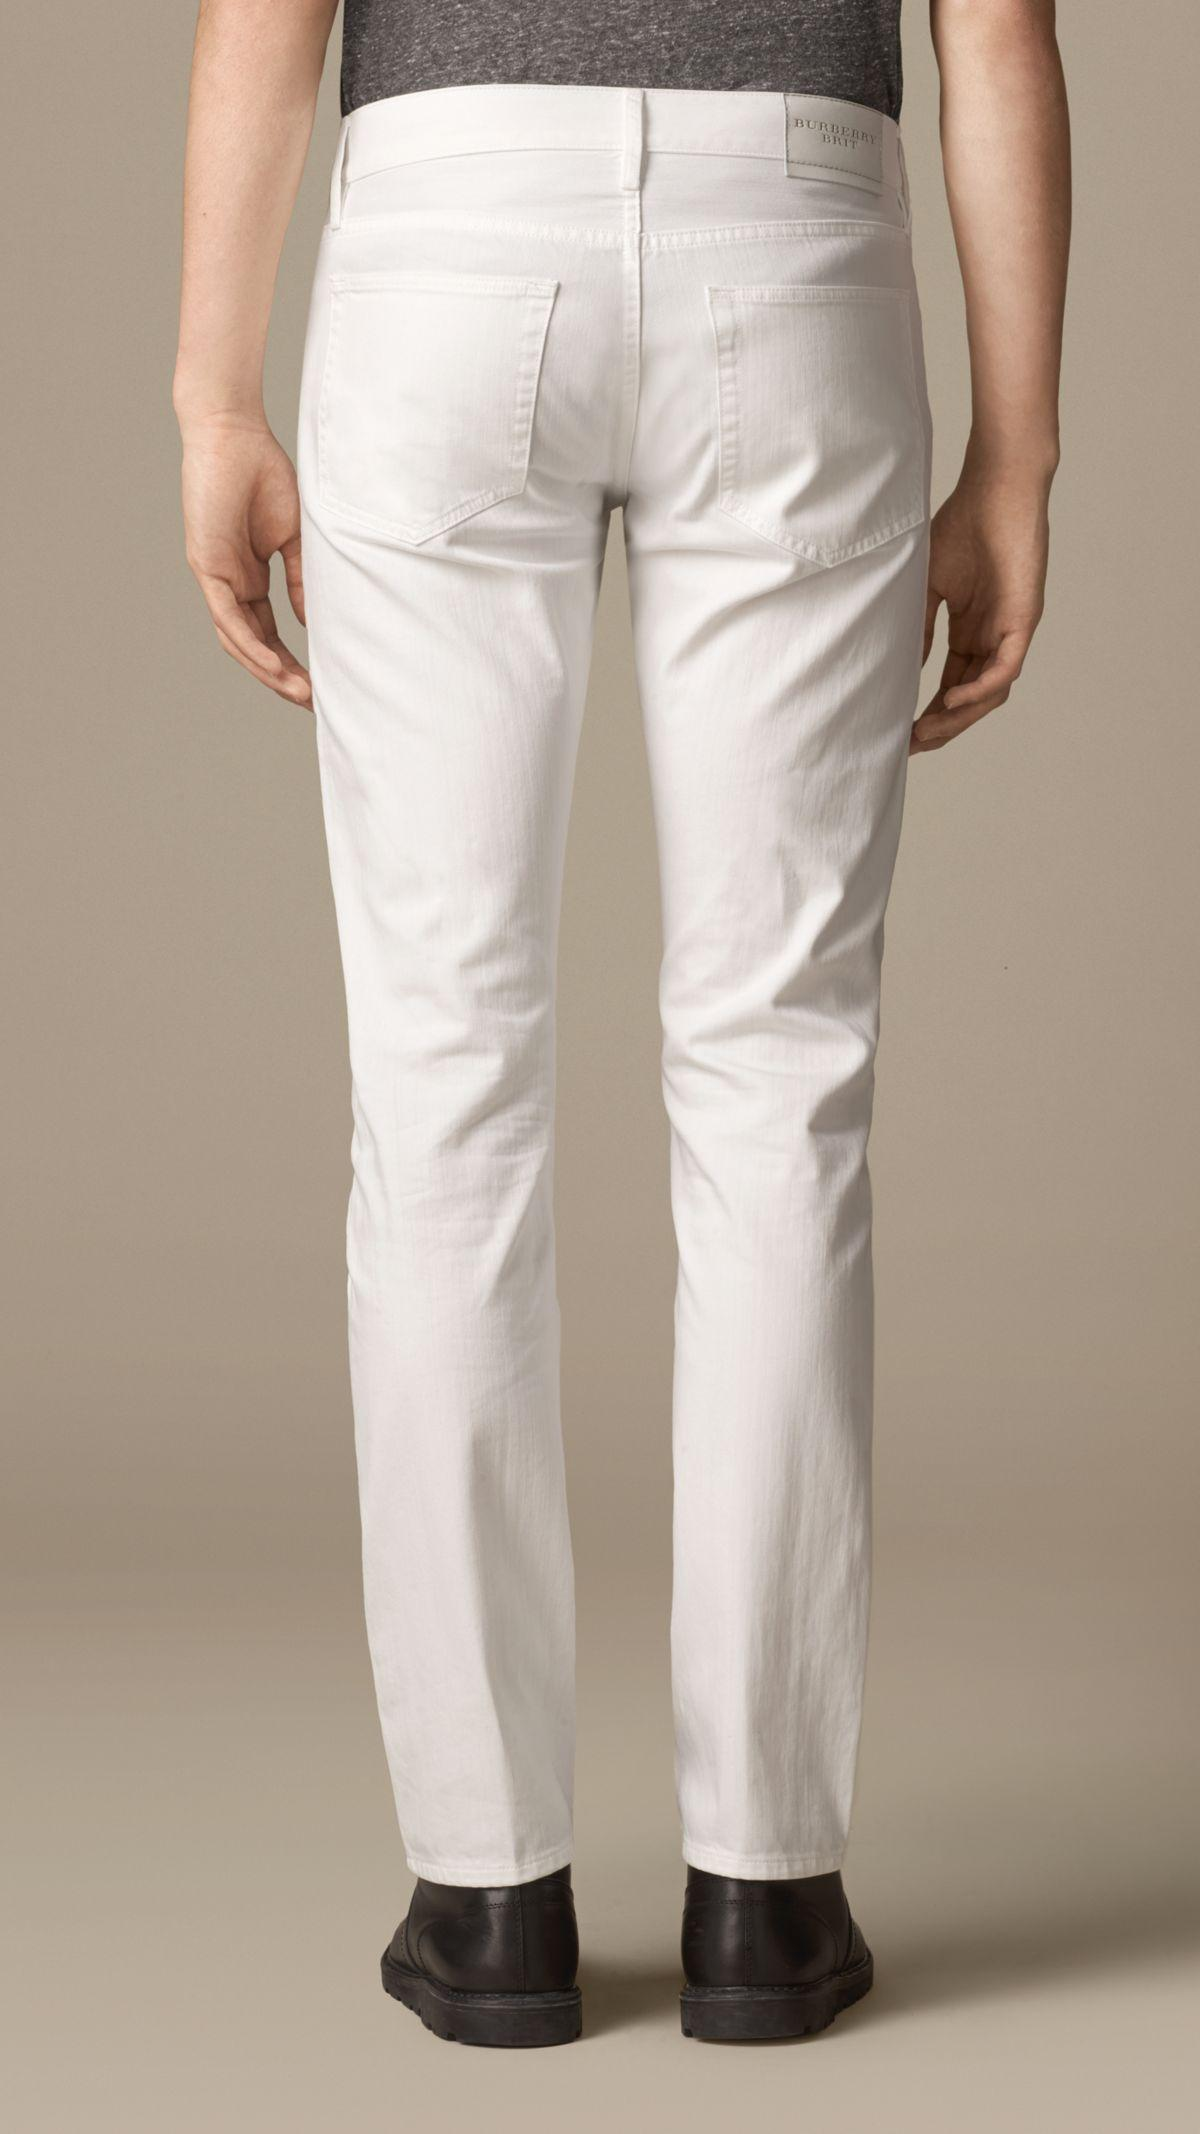 Burberry Straight Fit White Jeans for Men